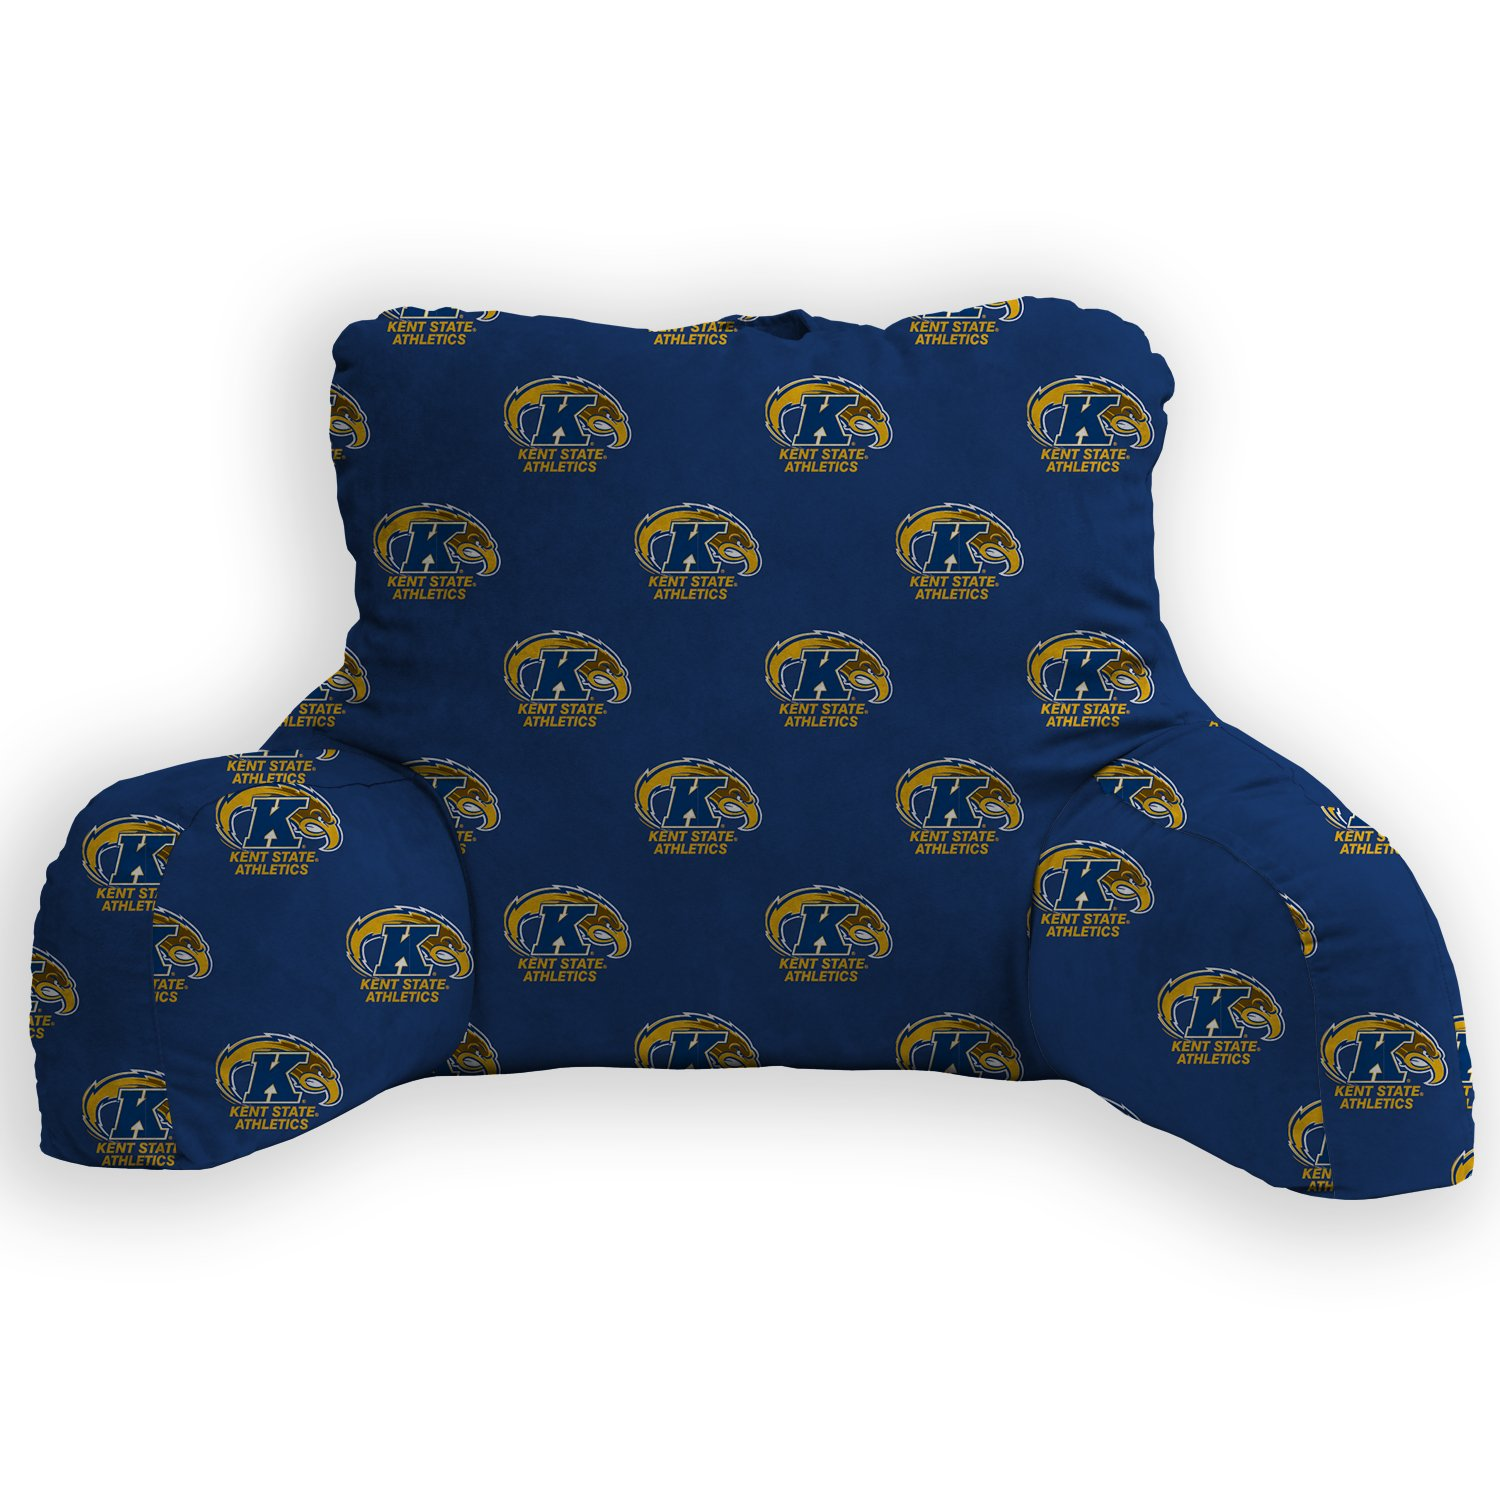 22x17x5 Pegasus Sports NCAA PLUSH BACK REST KENT ST Navy